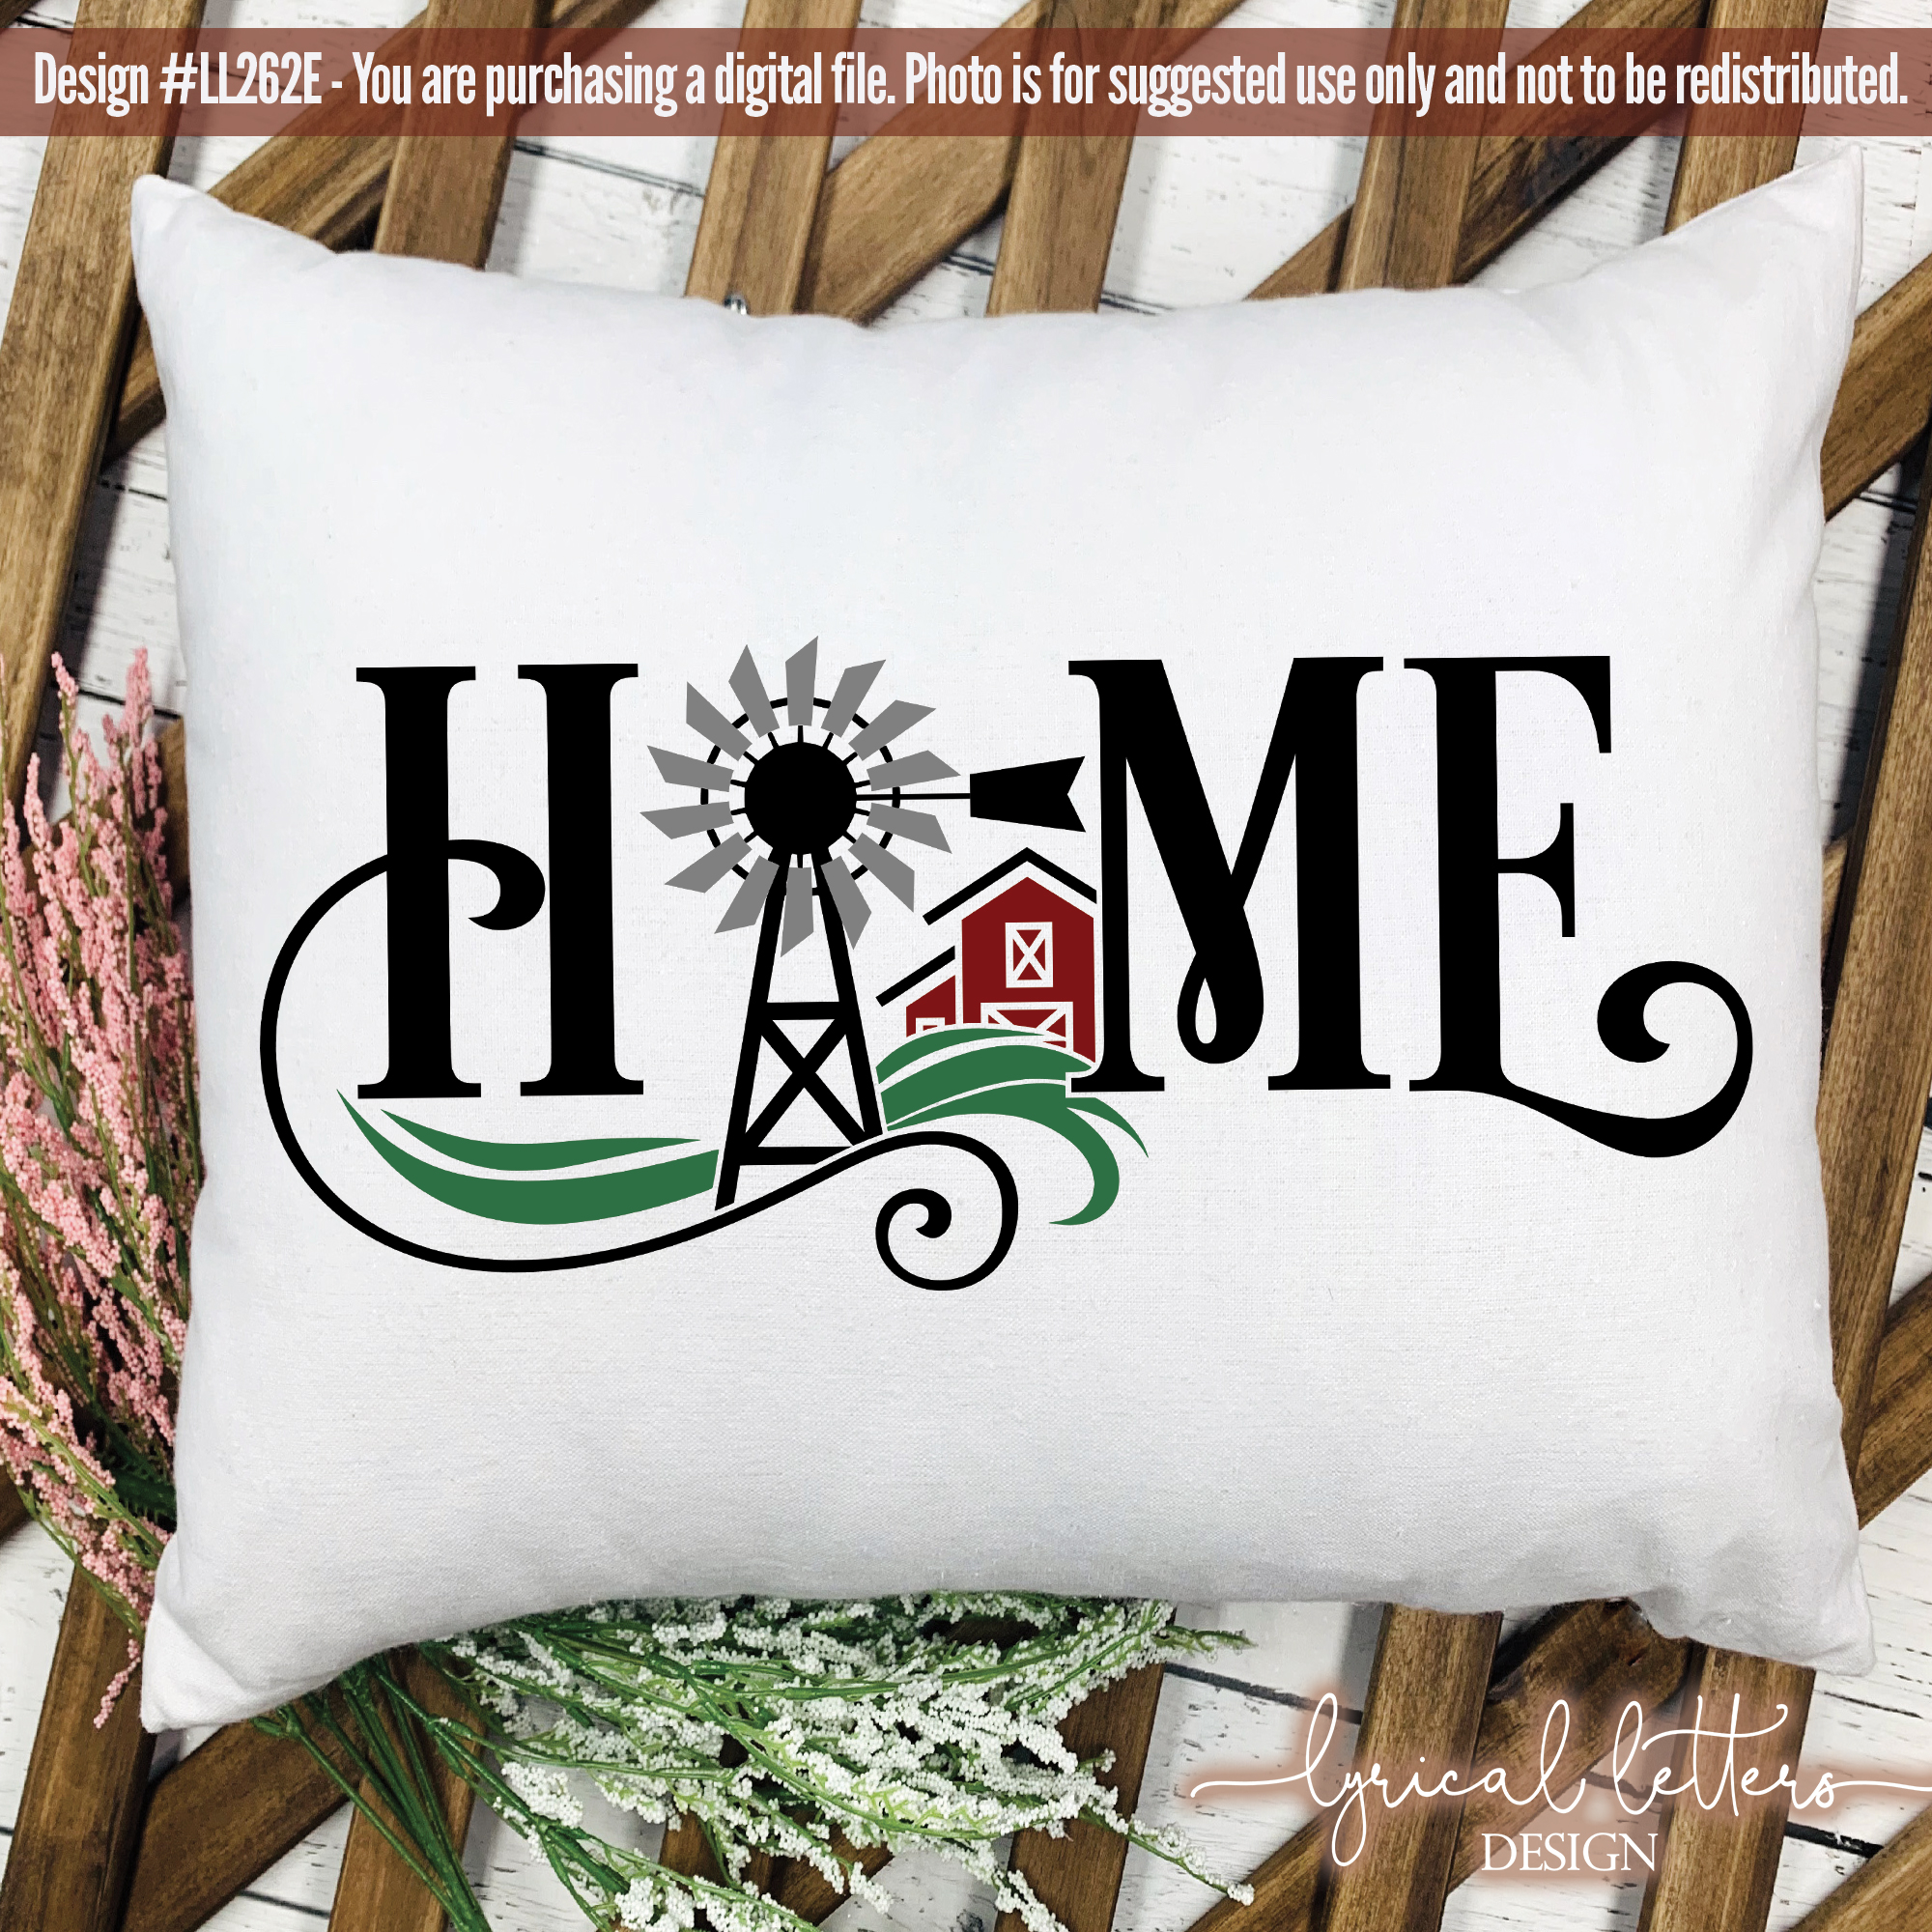 NEW! Home Bundle of 6 SVG Cut Files LL262 example image 7